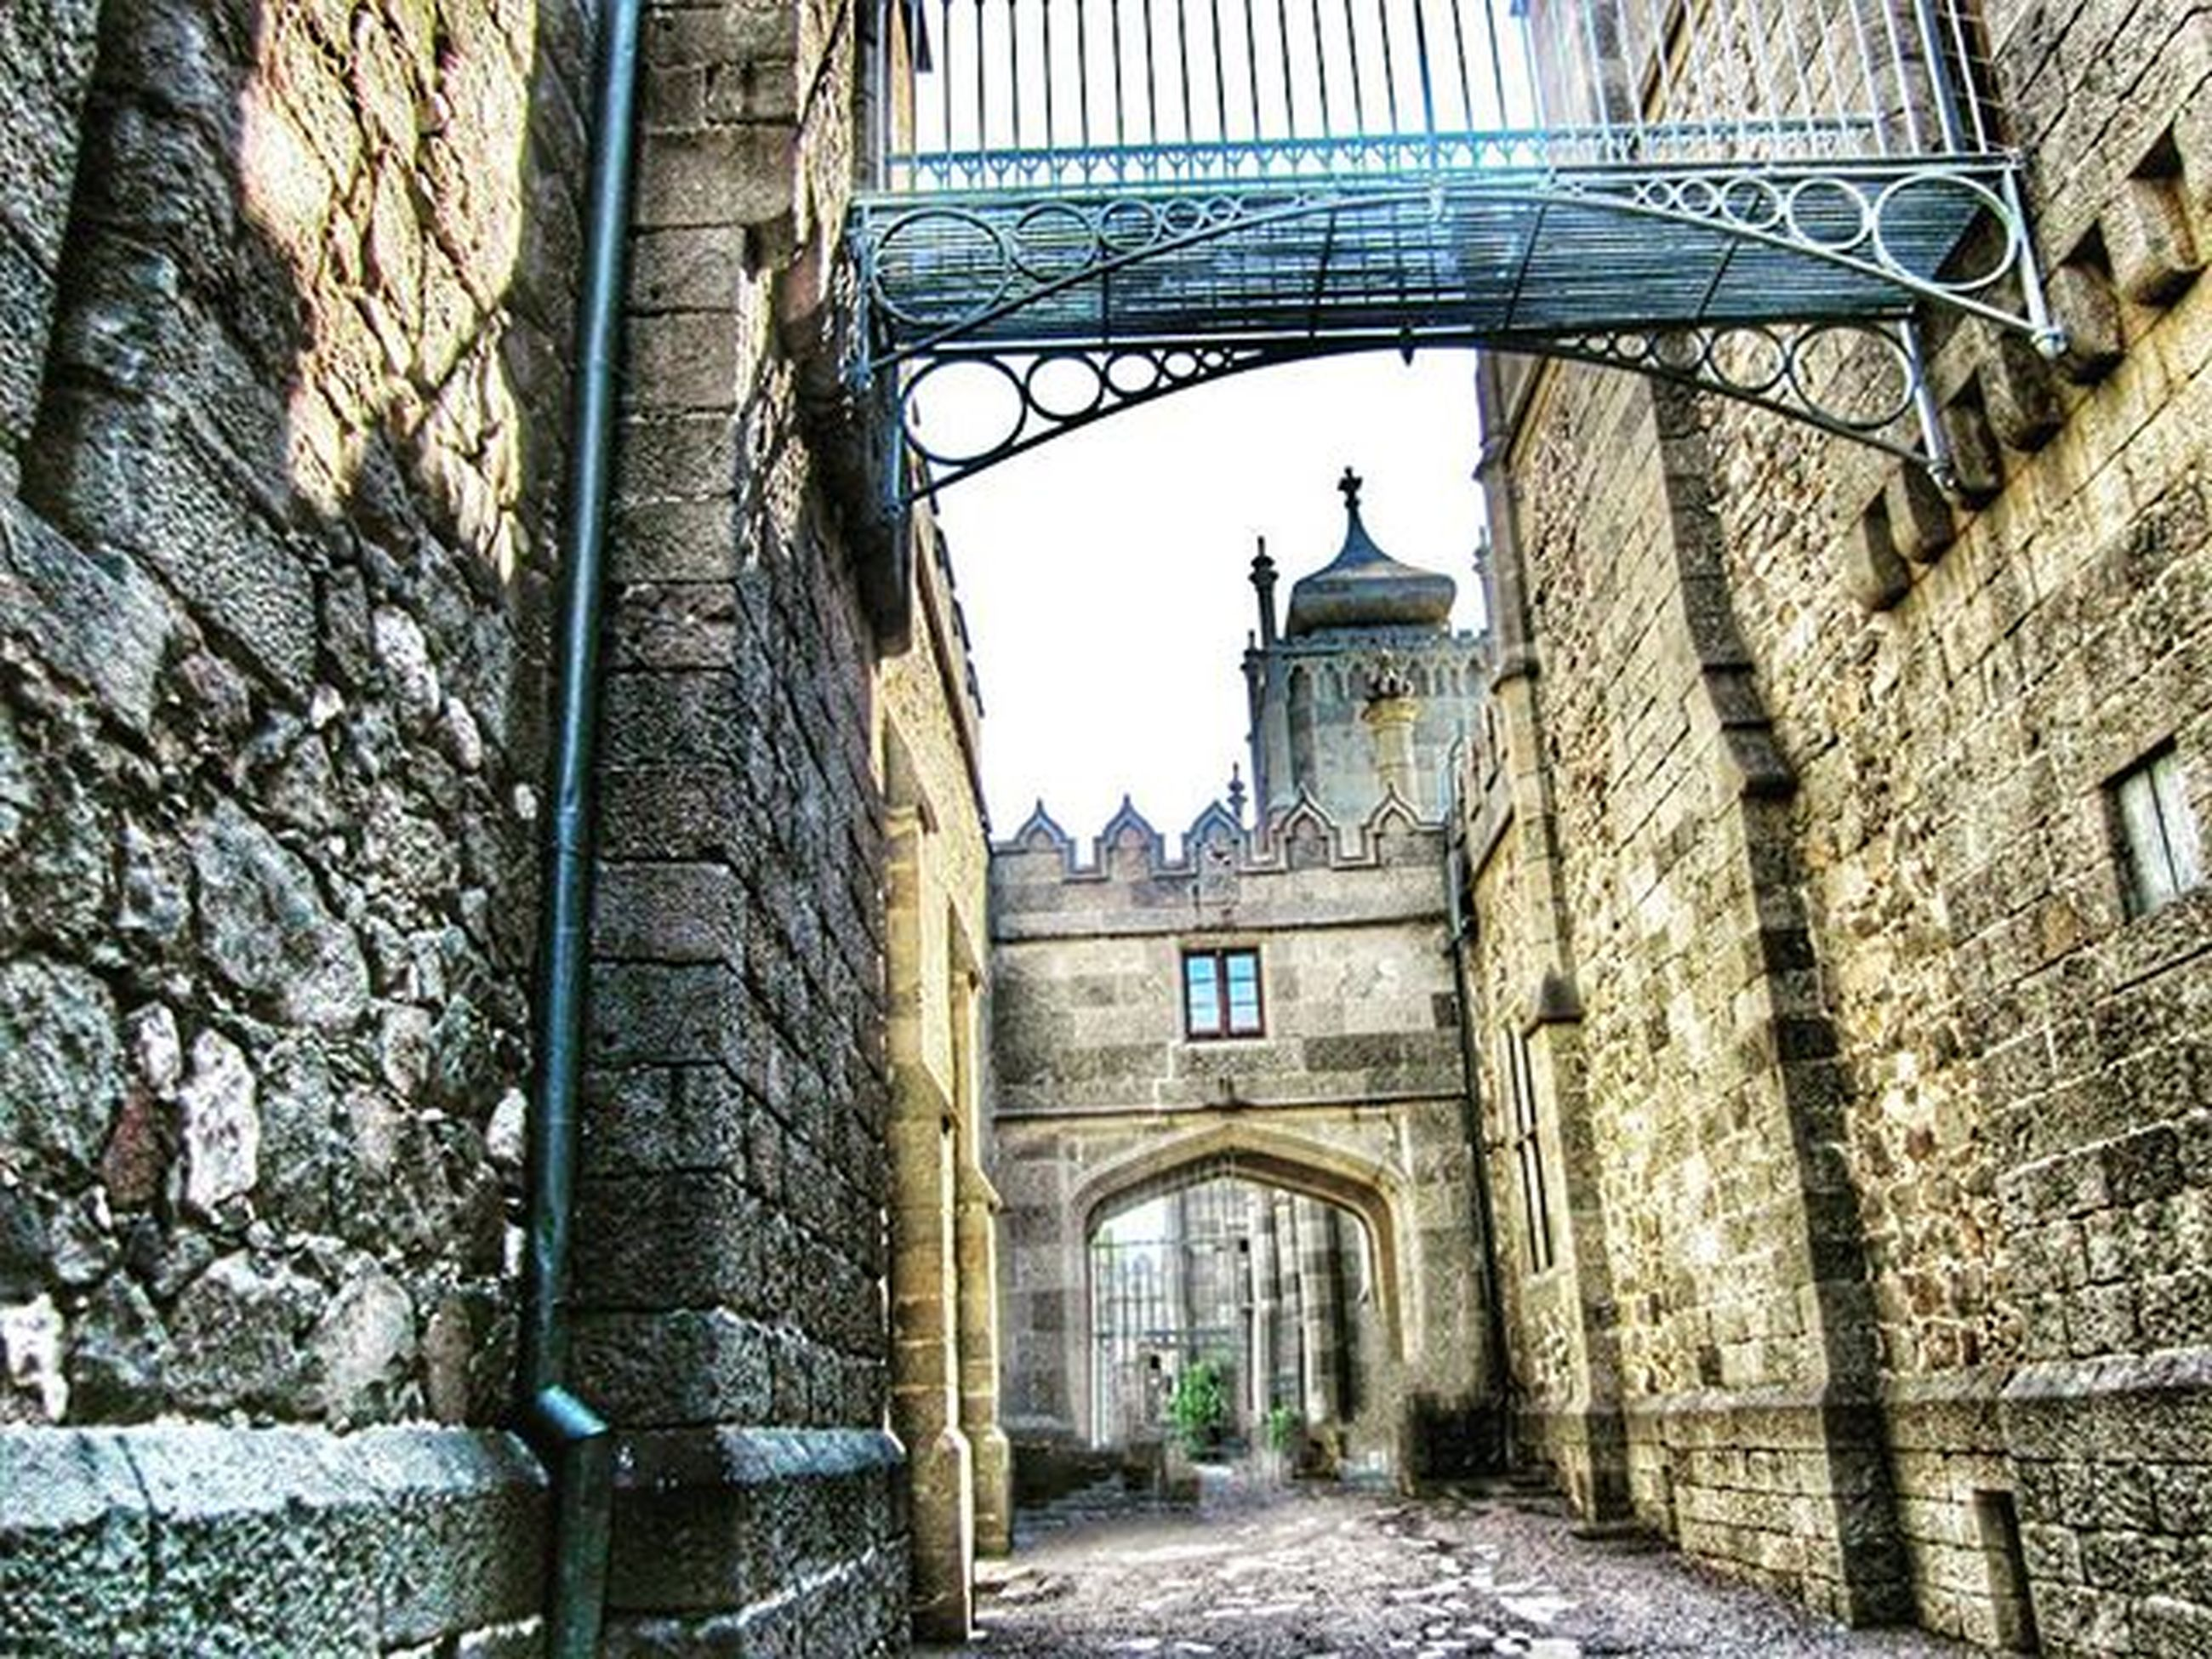 architecture, built structure, arch, building exterior, the way forward, history, archway, diminishing perspective, day, travel destinations, building, walkway, arched, old, religion, incidental people, historic, cobblestone, travel, low angle view